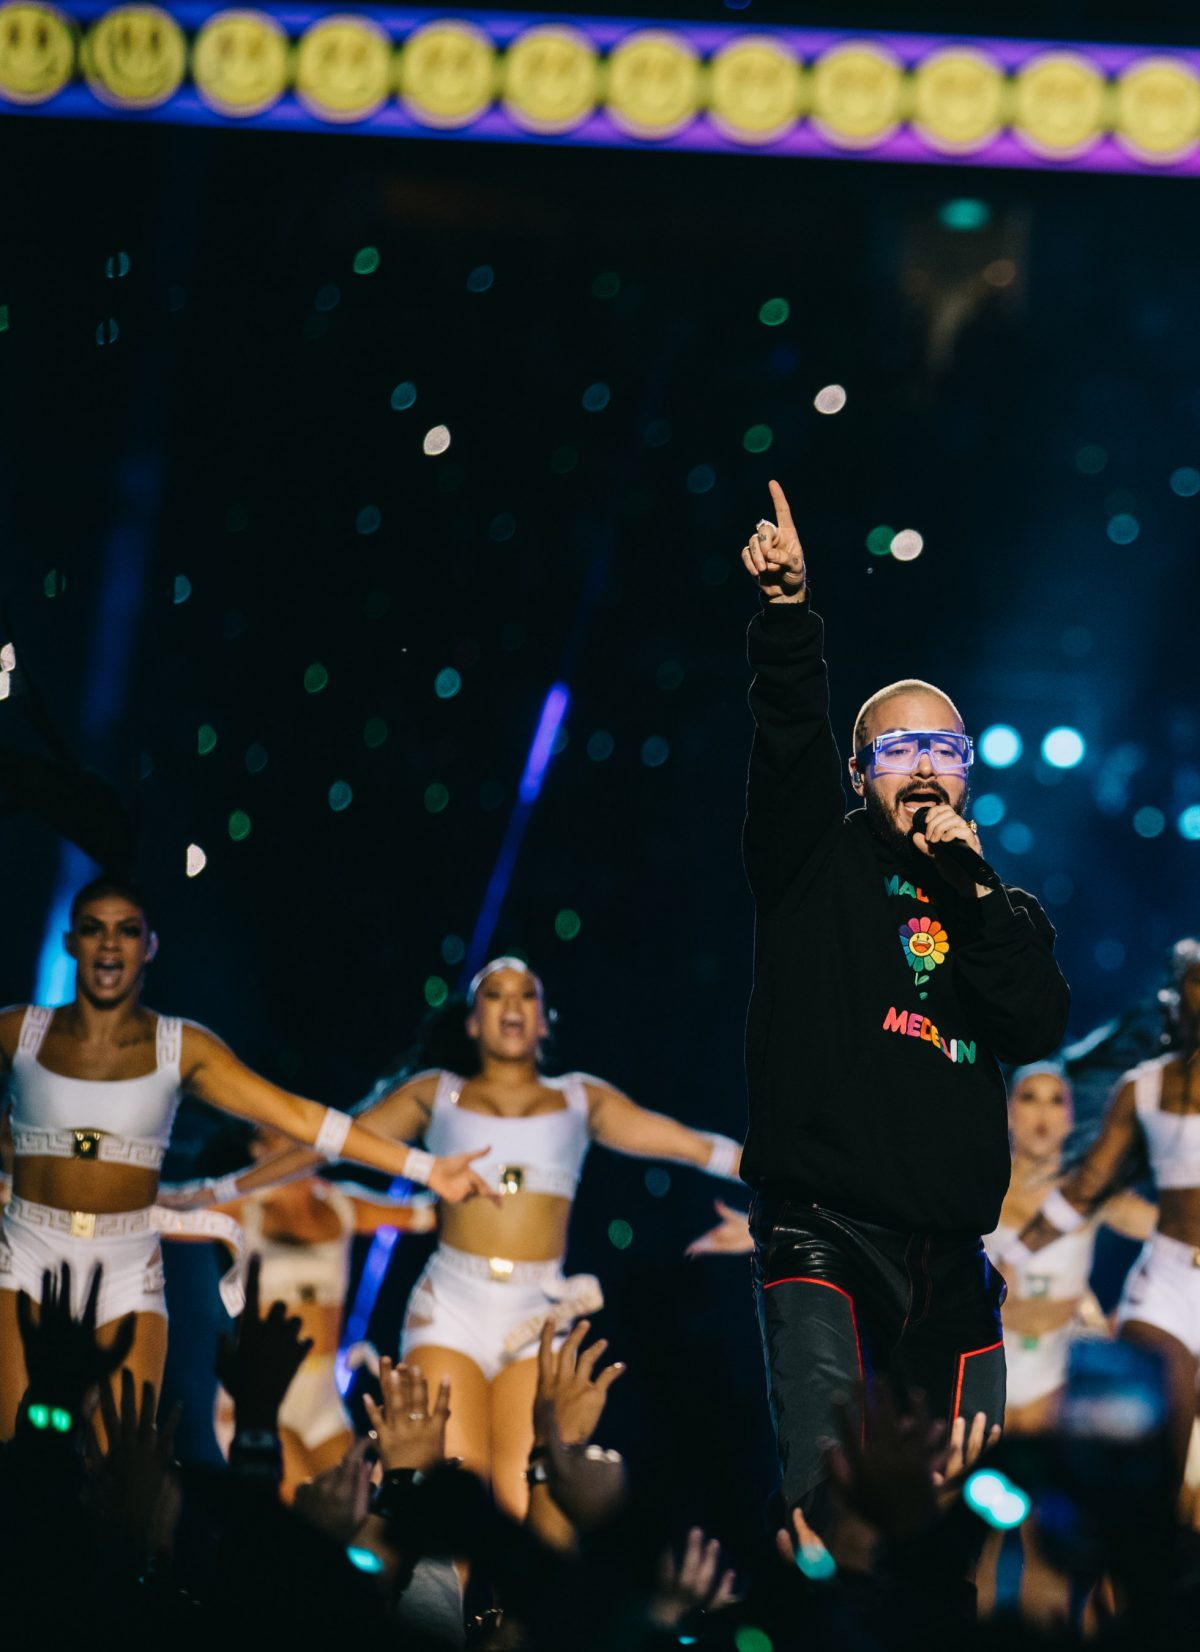 «Reggaeton's Global Ambassador» J BALVIN AND will.i.am PREVIEW COLORES, A COLLECTION OF AUDIO-ENHANCED, MODULAR, VOICE-CONTROLLED GLASSES IN MIAMI